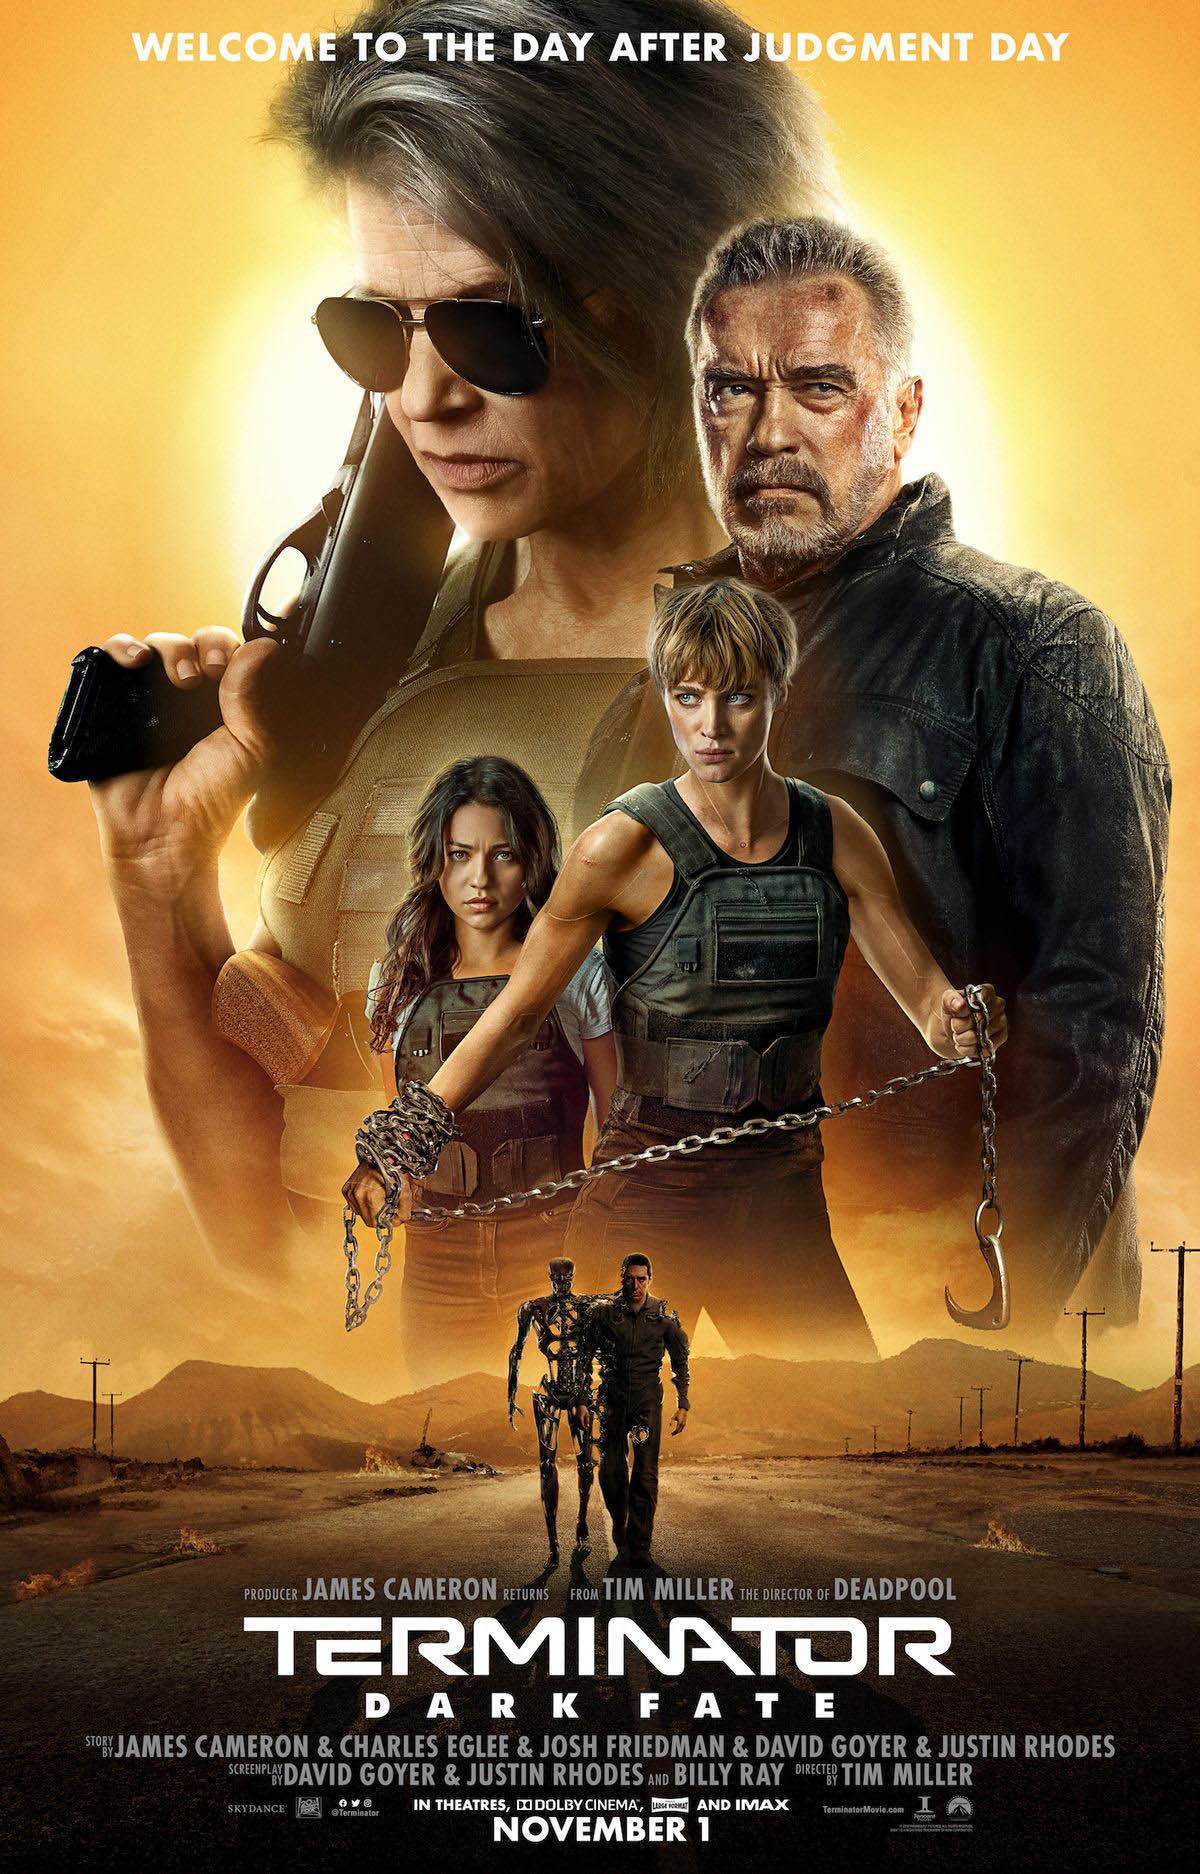 Terminator: Dark Fate Movie Trailer Free Online